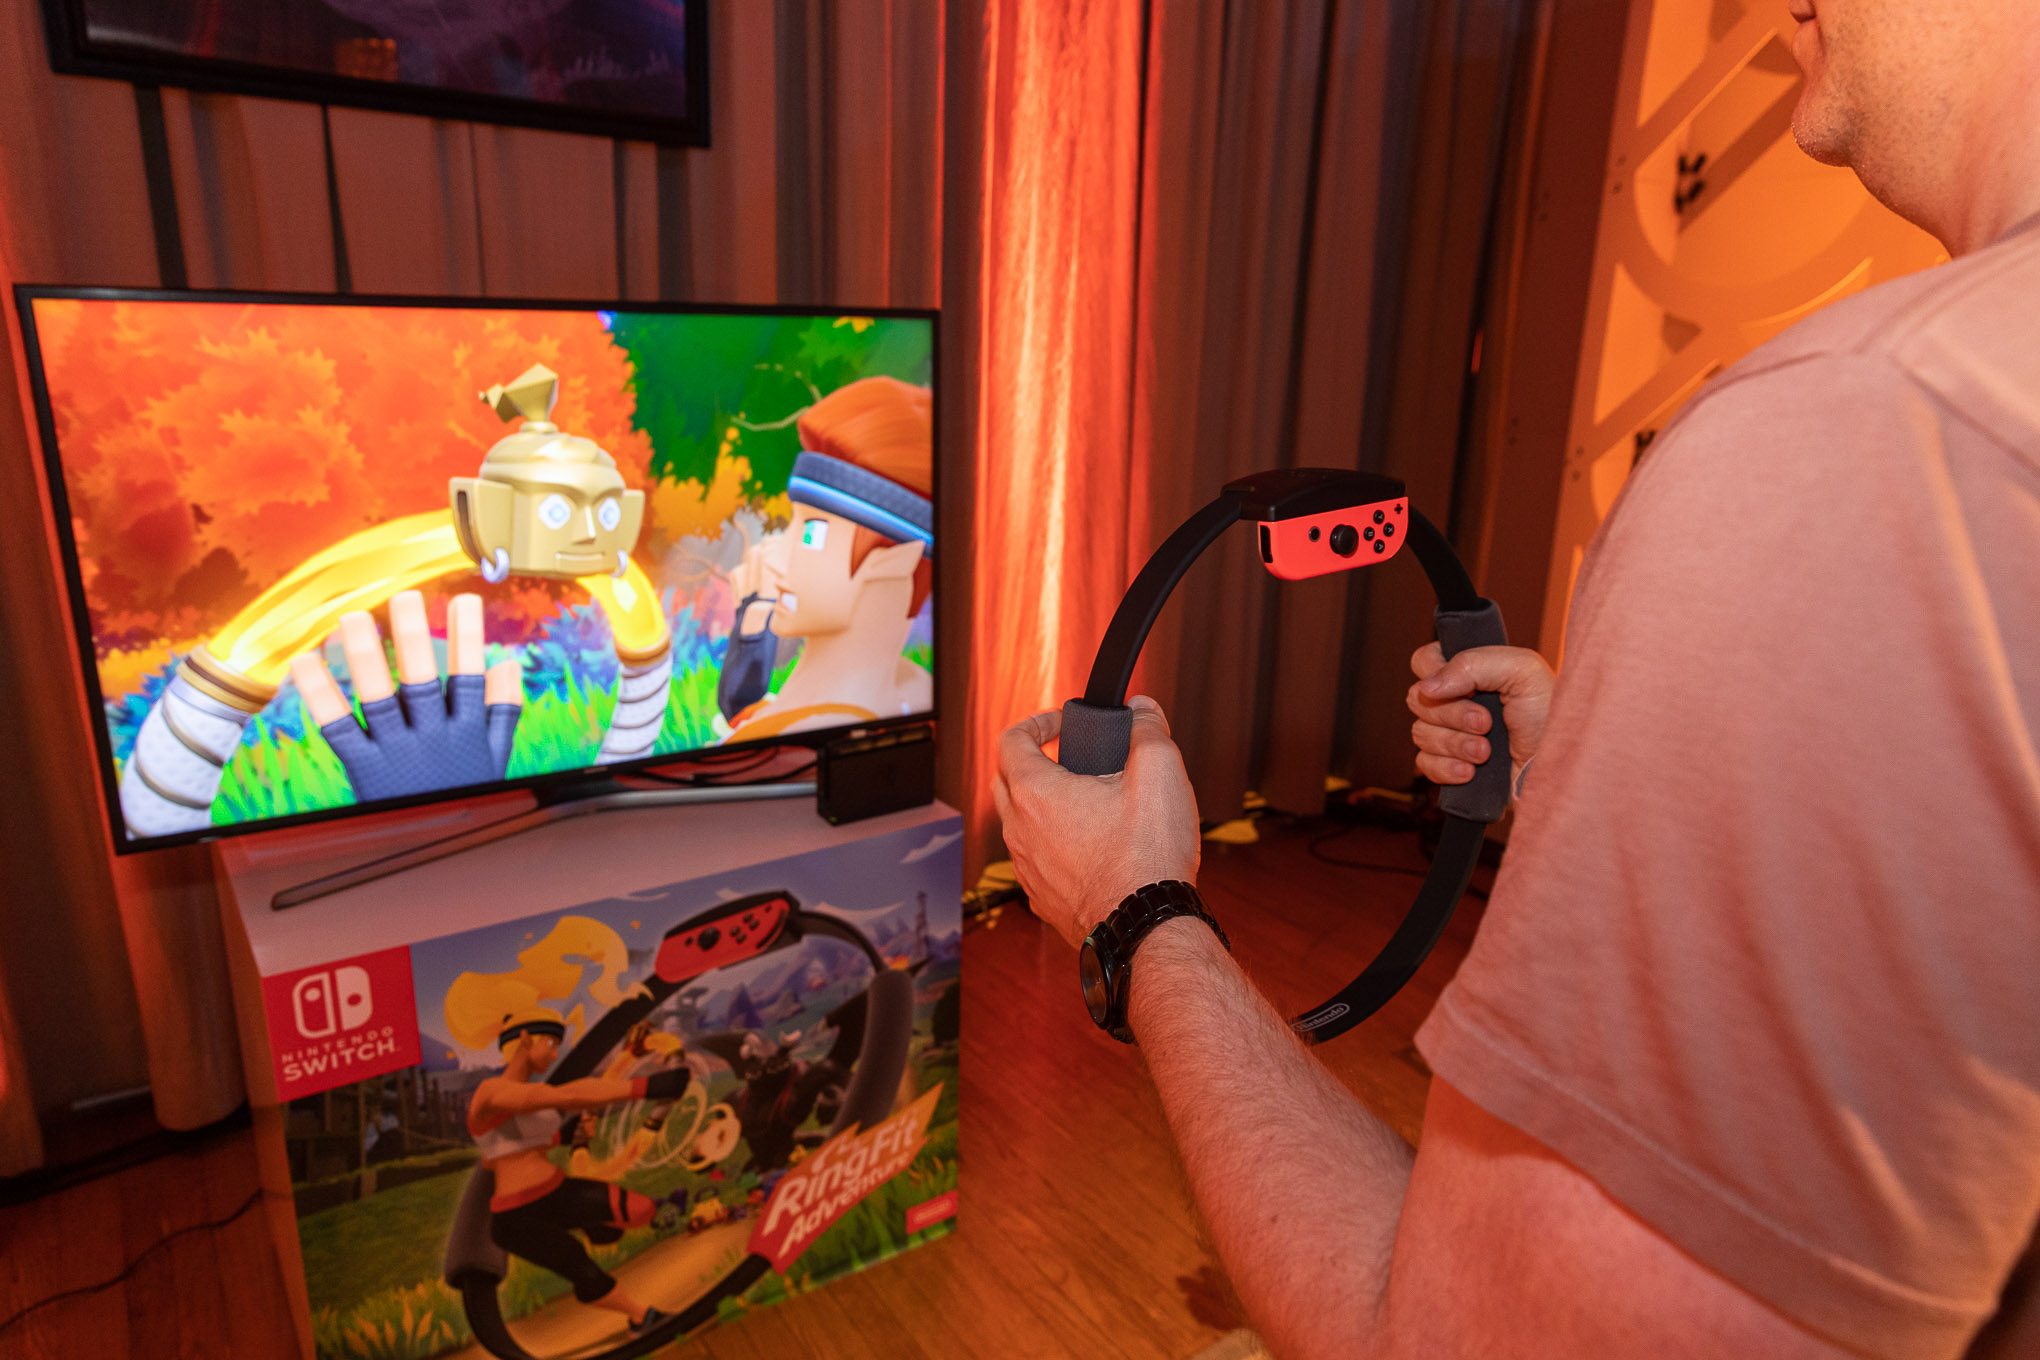 Nintendo made fitness fun with a plastic ring and a pulse-pounding RPG